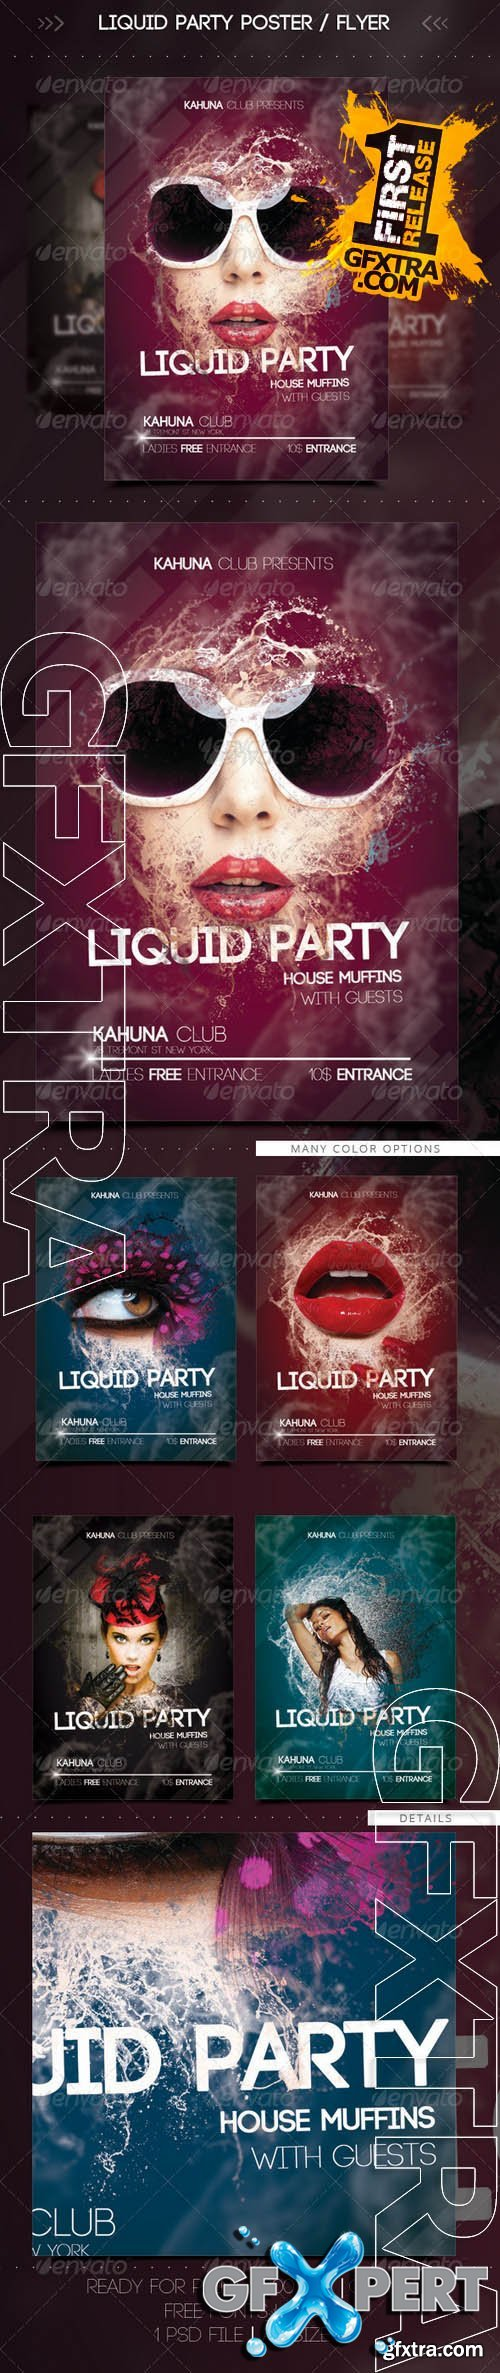 Wet Liquid Party Flyer / Poster - Graphicriver 7282123